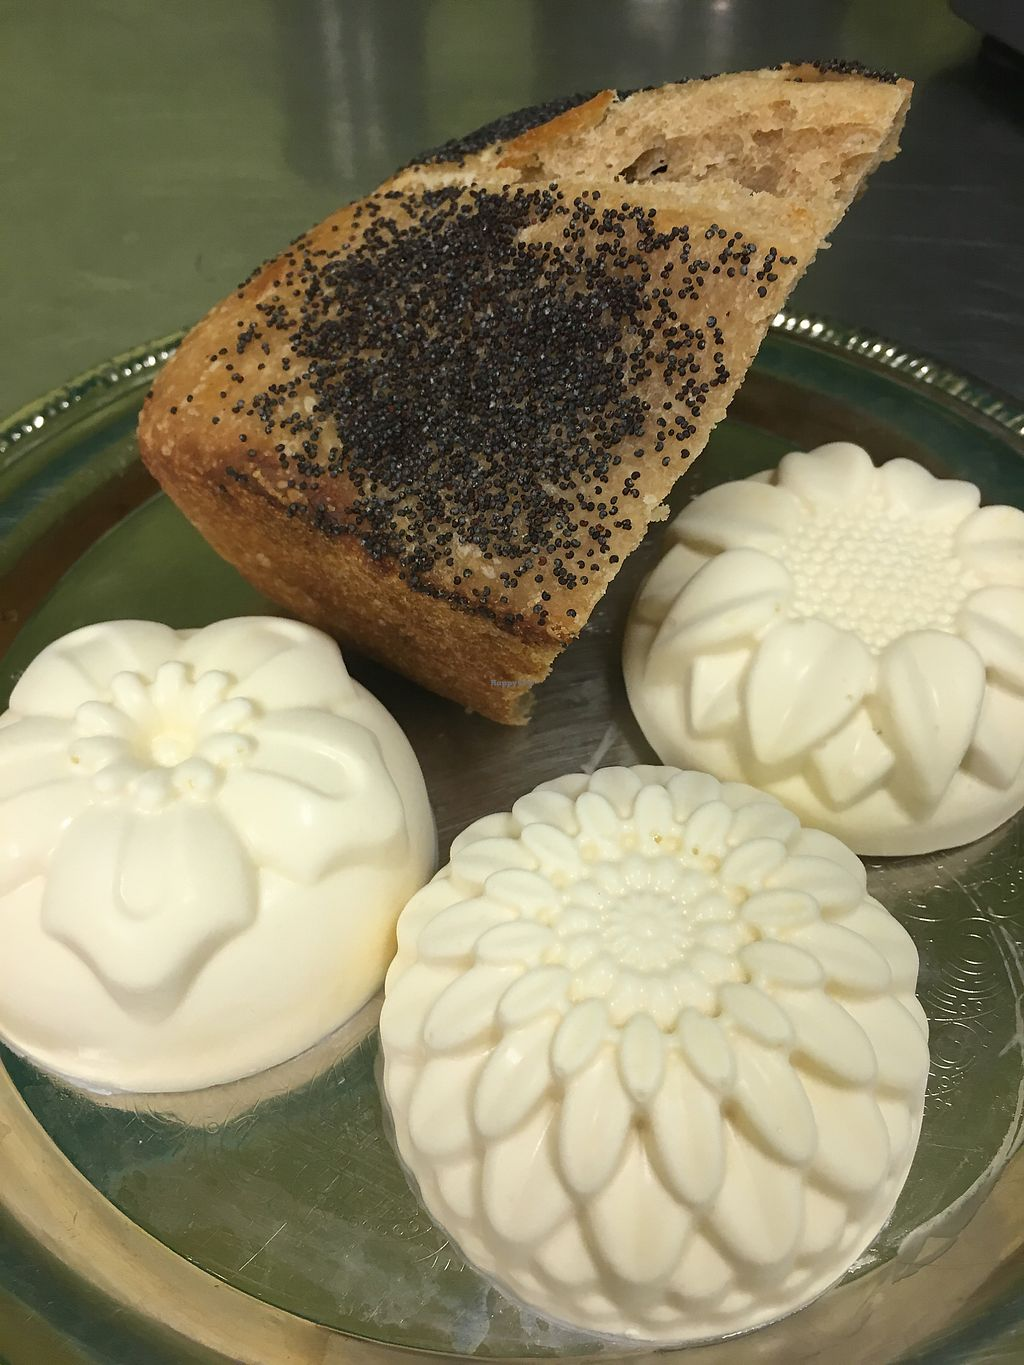 """Photo of Radha Govinda's Buffet  by <a href=""""/members/profile/LengleJungle"""">LengleJungle</a> <br/>small batches cultured coconut butter served daily with our fresh sour dough bread and fresh rolls <br/> July 17, 2017  - <a href='/contact/abuse/image/93526/281519'>Report</a>"""